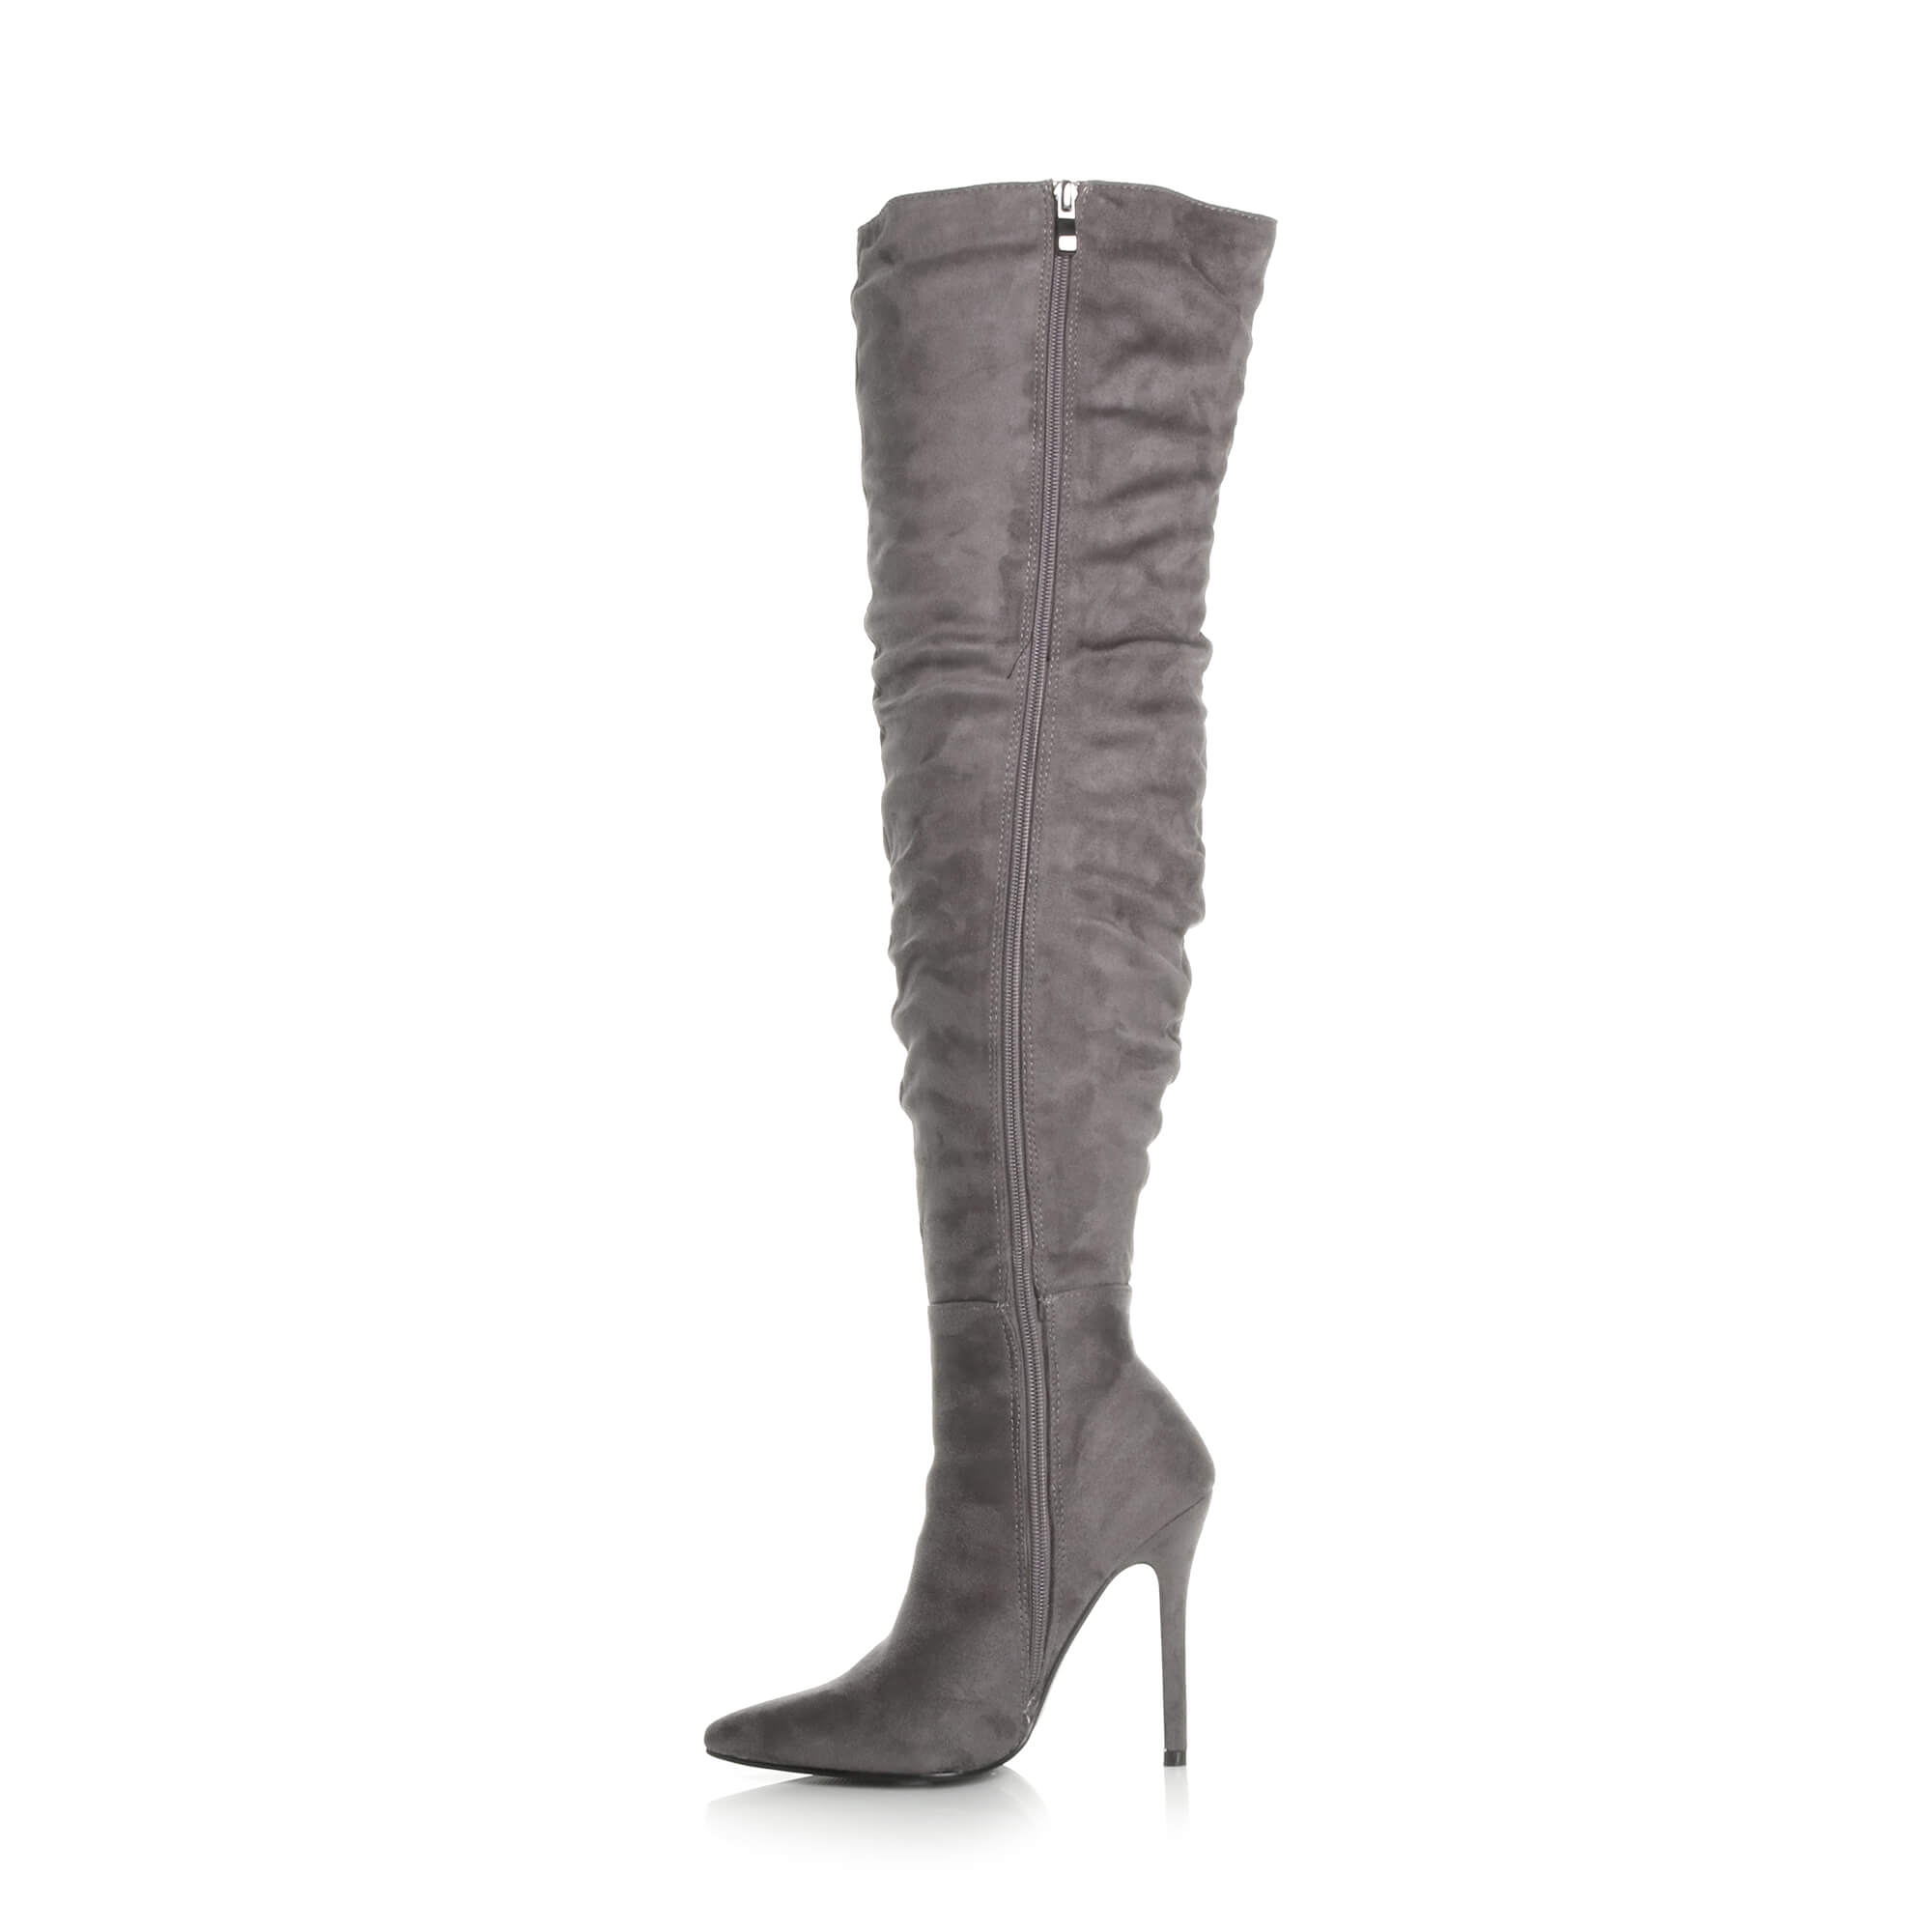 WOMENS-LADIES-SLOUCH-RUCHED-OVER-THE-KNEE-POINTED-THIGH-HIGH-HEELED-BOOTS-SIZE thumbnail 10